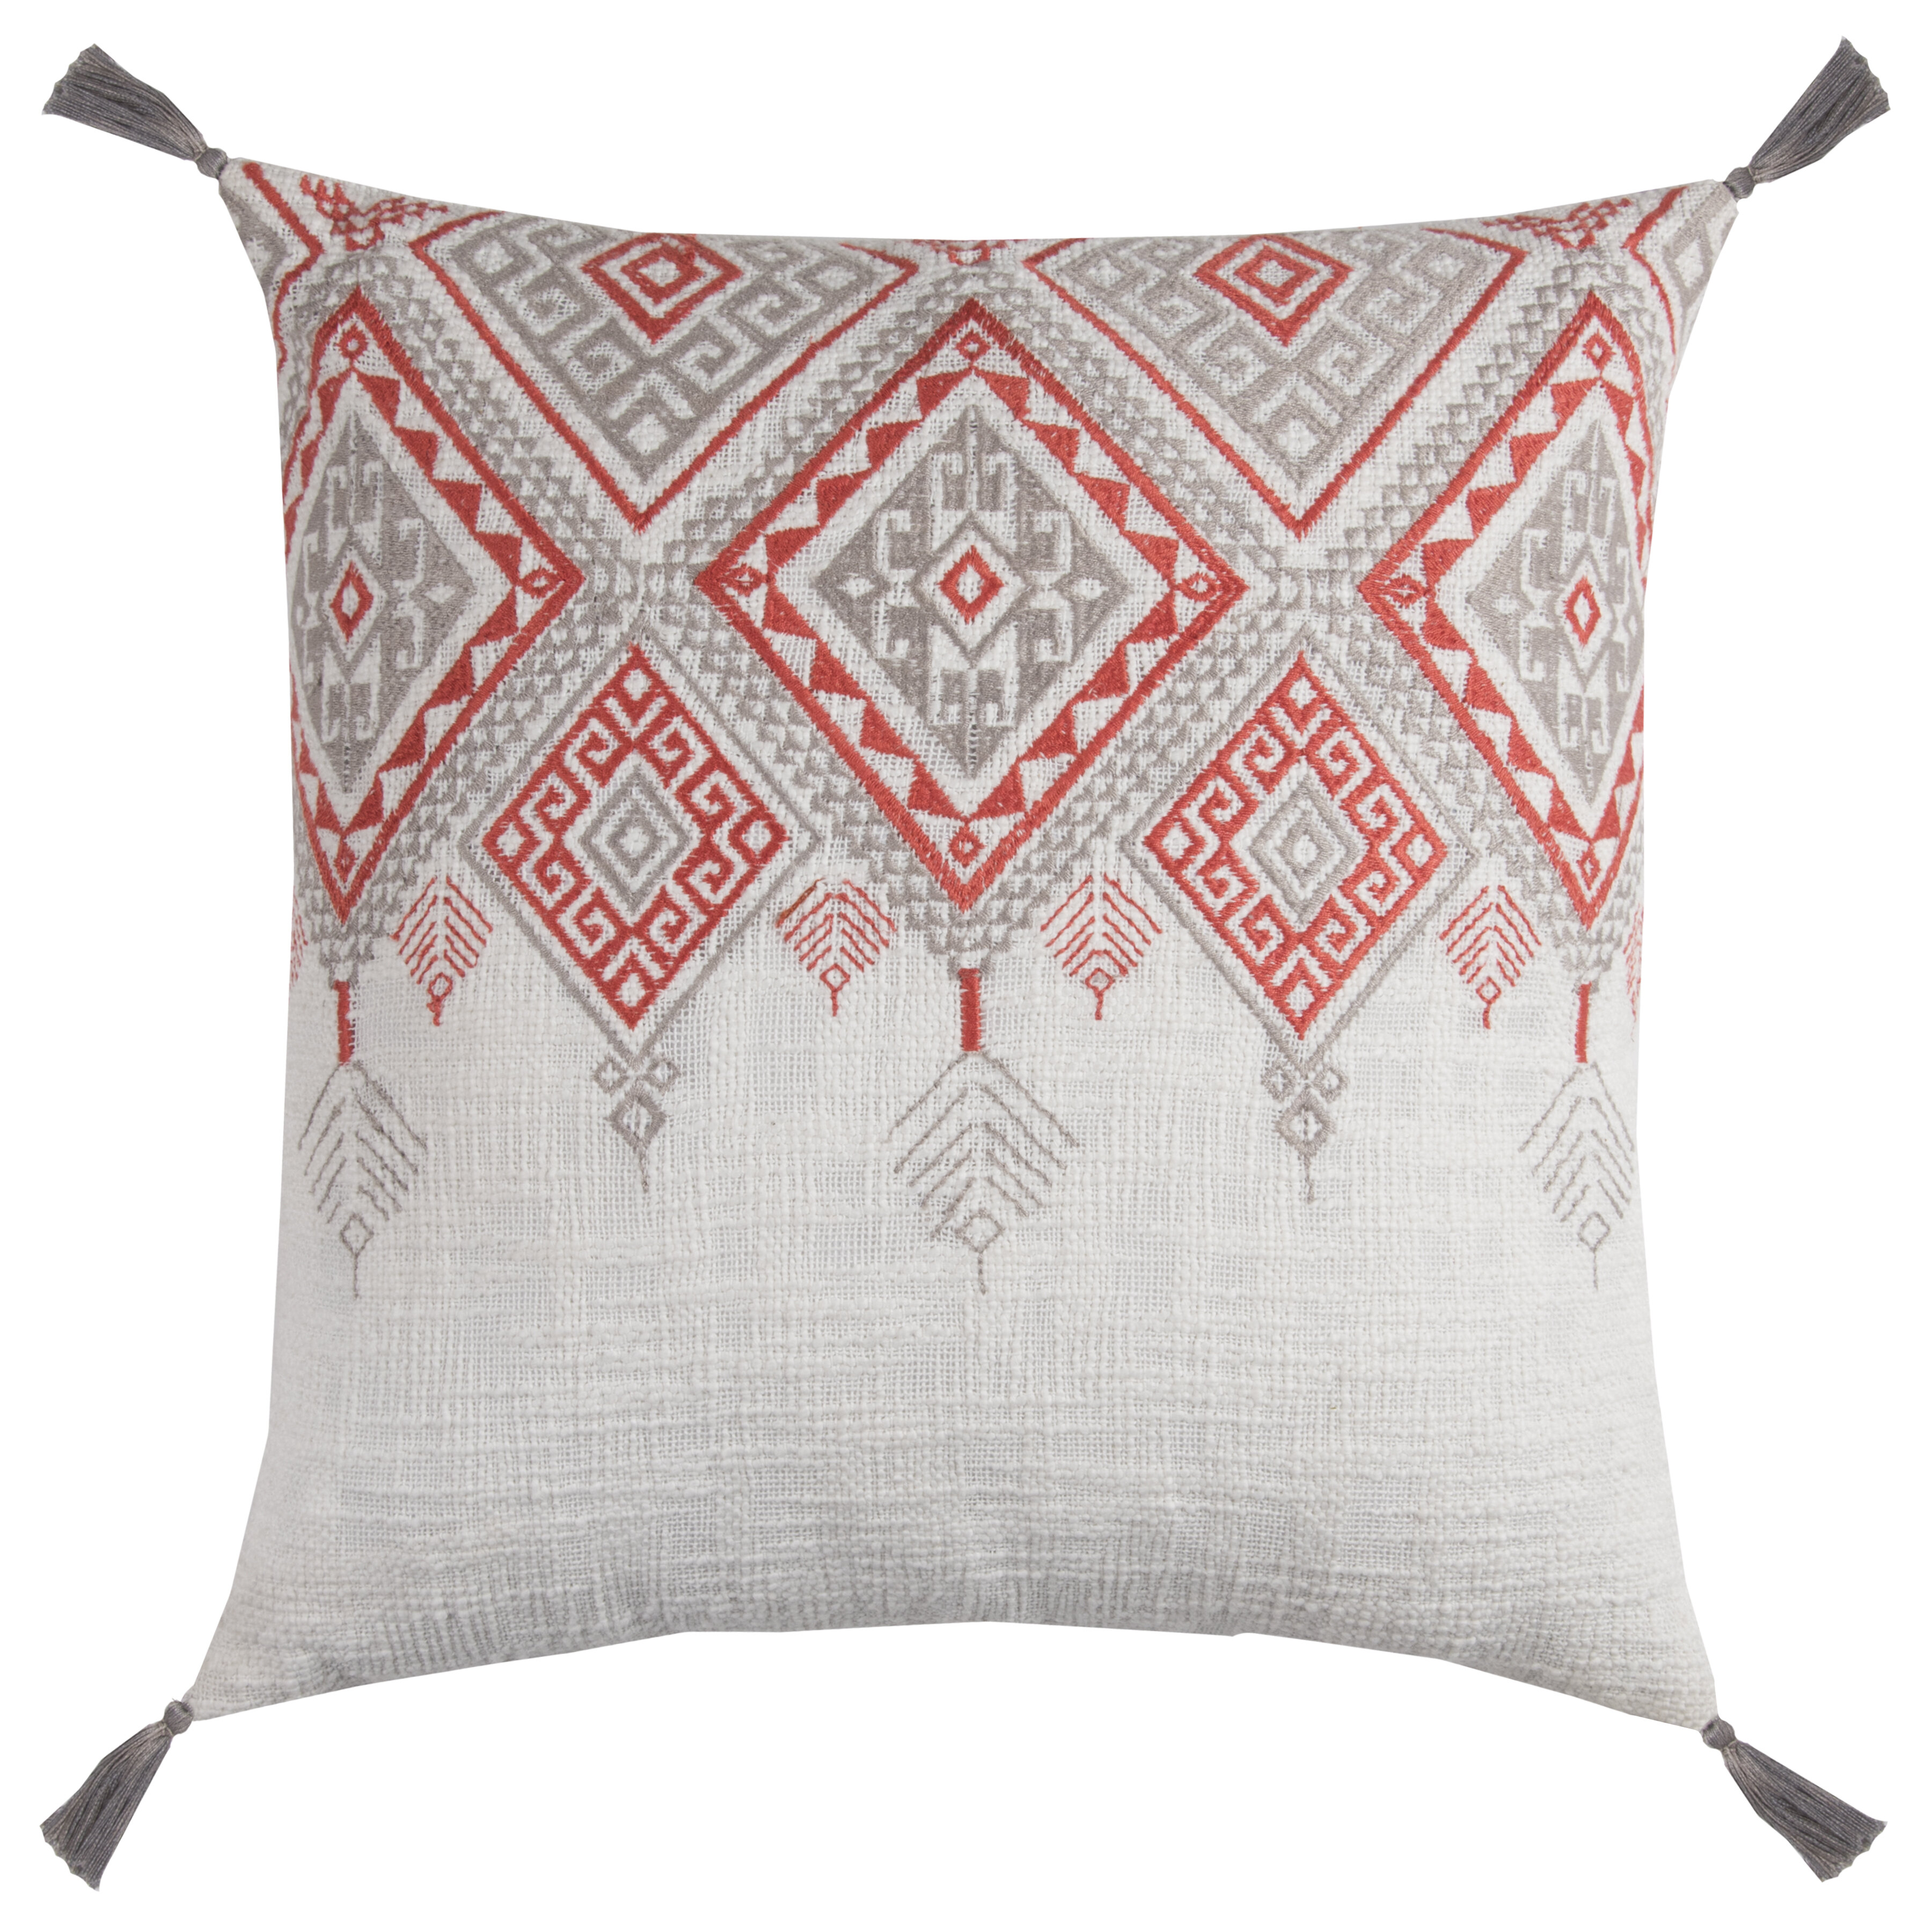 Bohemian Made Clean Throw Pillows You Ll Love In 2021 Wayfair